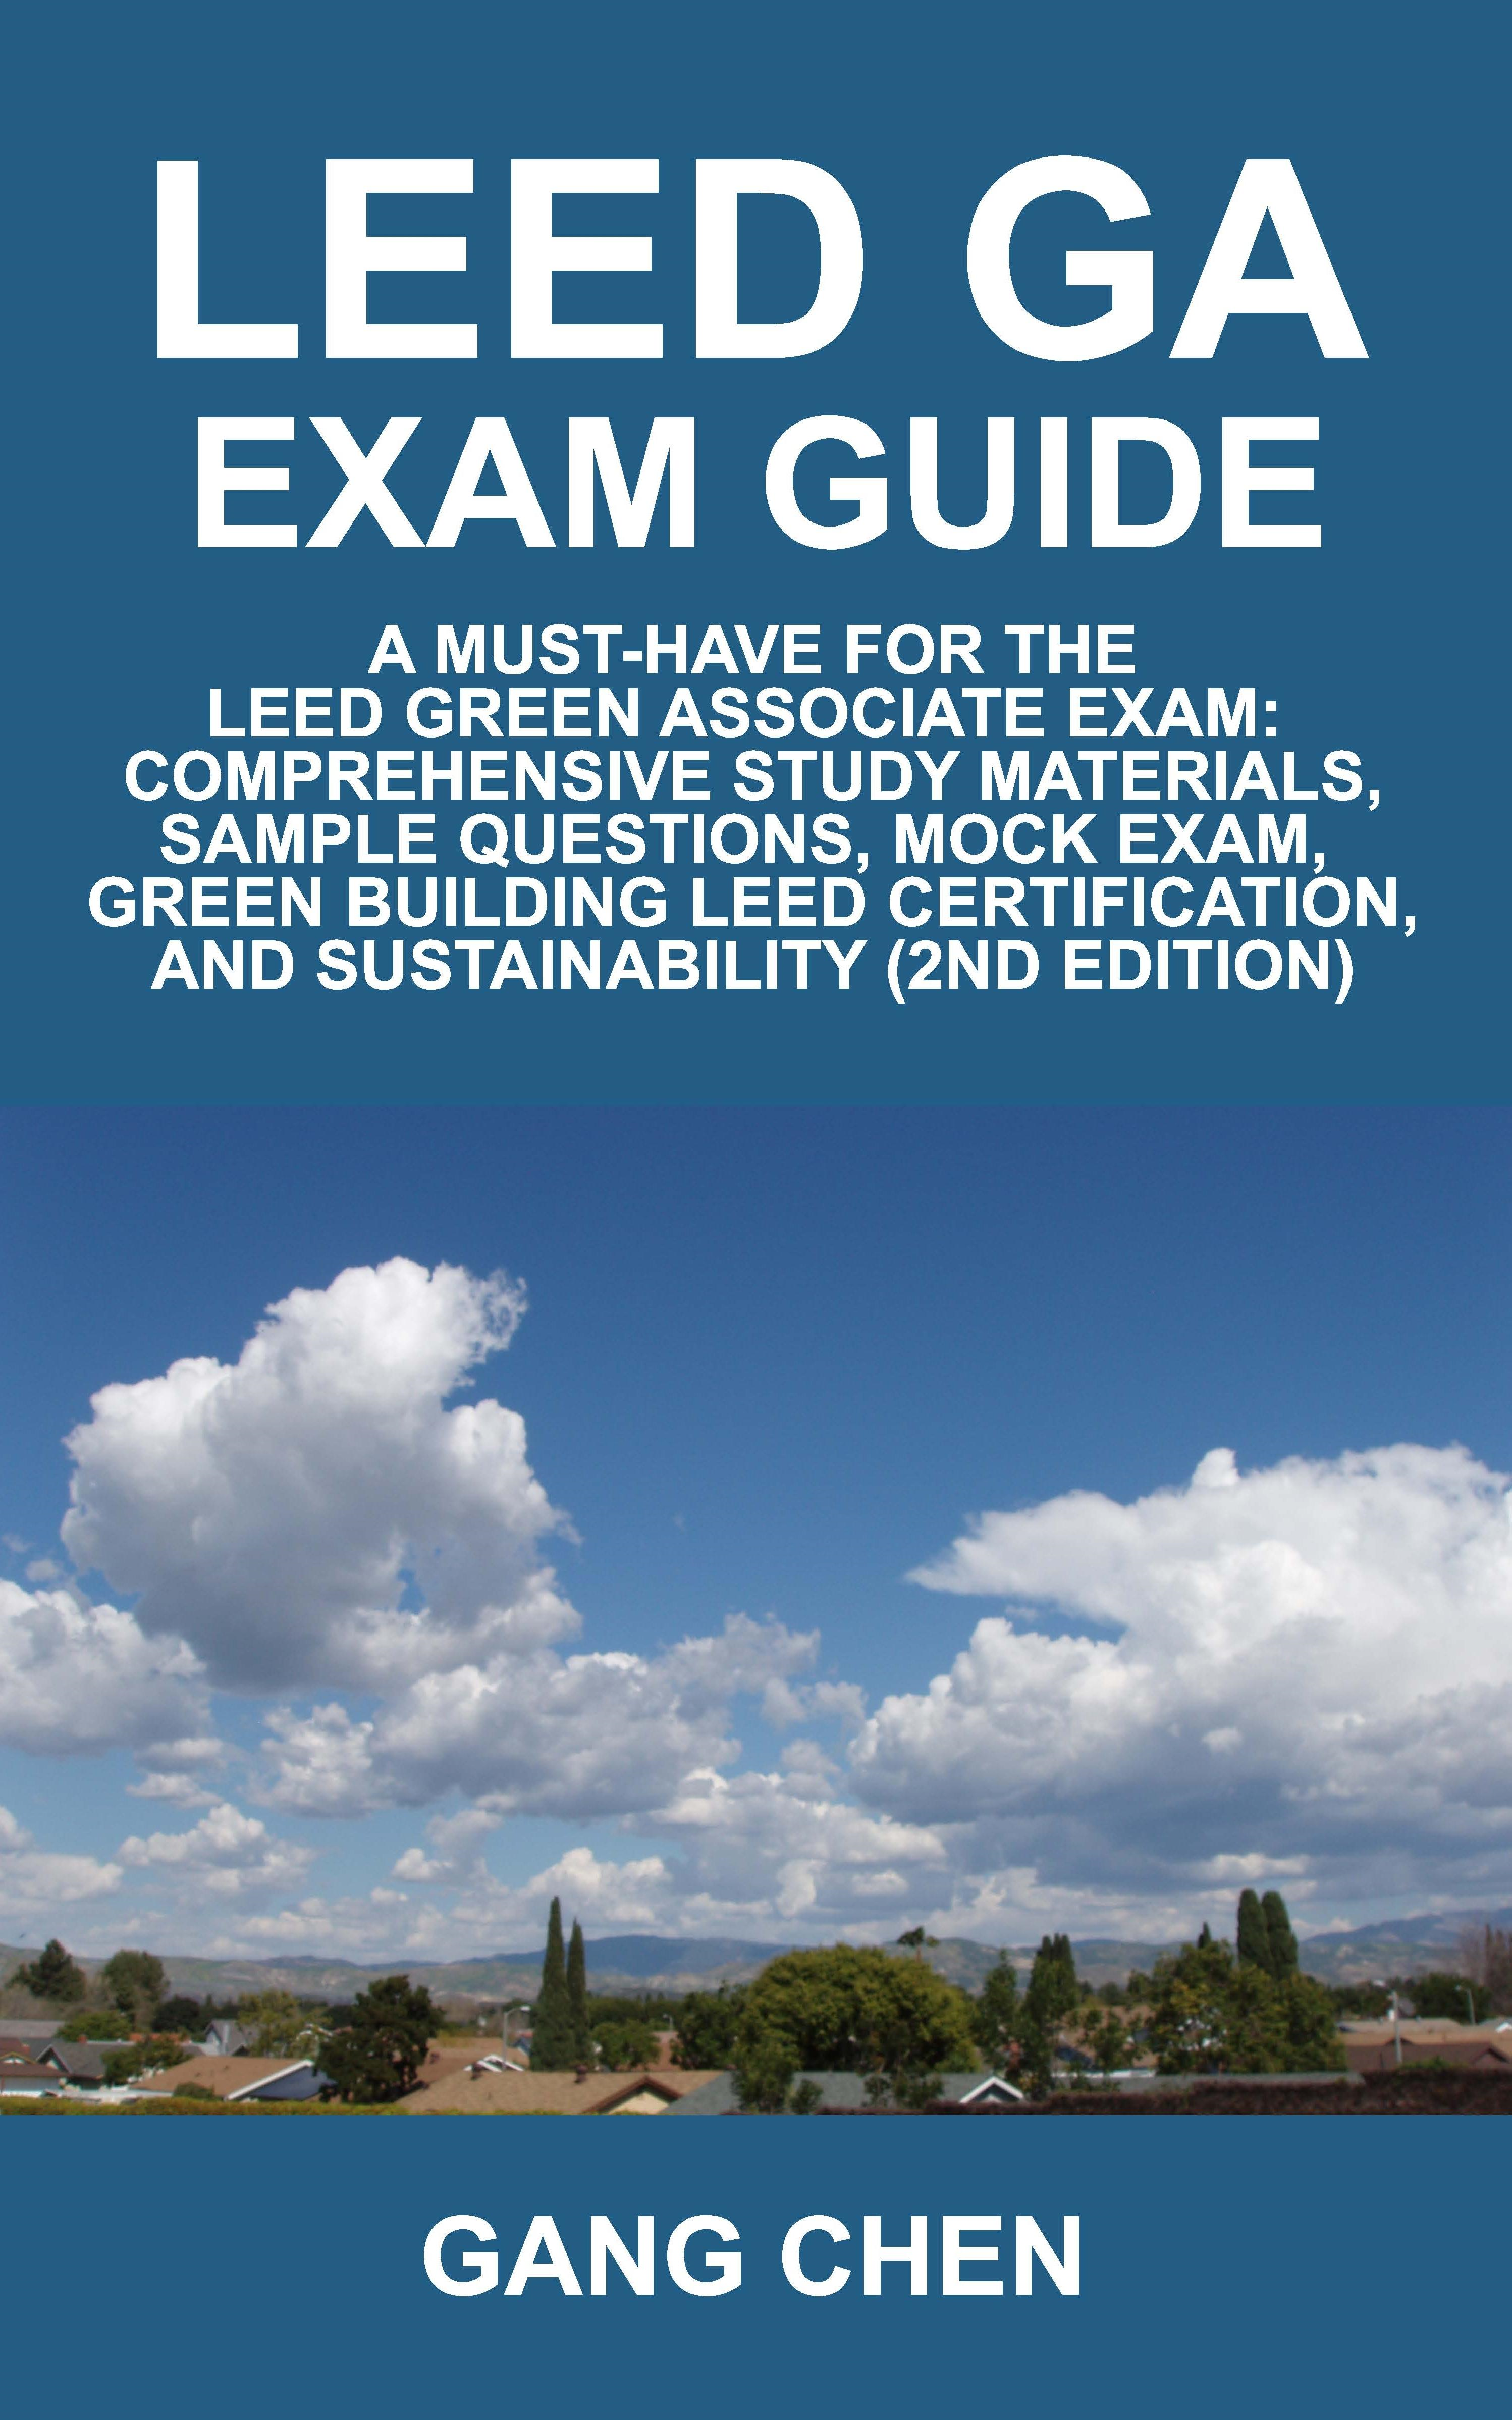 LEED GA Exam Guide: A must-have for the LEED green associate exam: Comprehensive study materials, sample questions, mock exam, green building leed cer By: Gang Chen